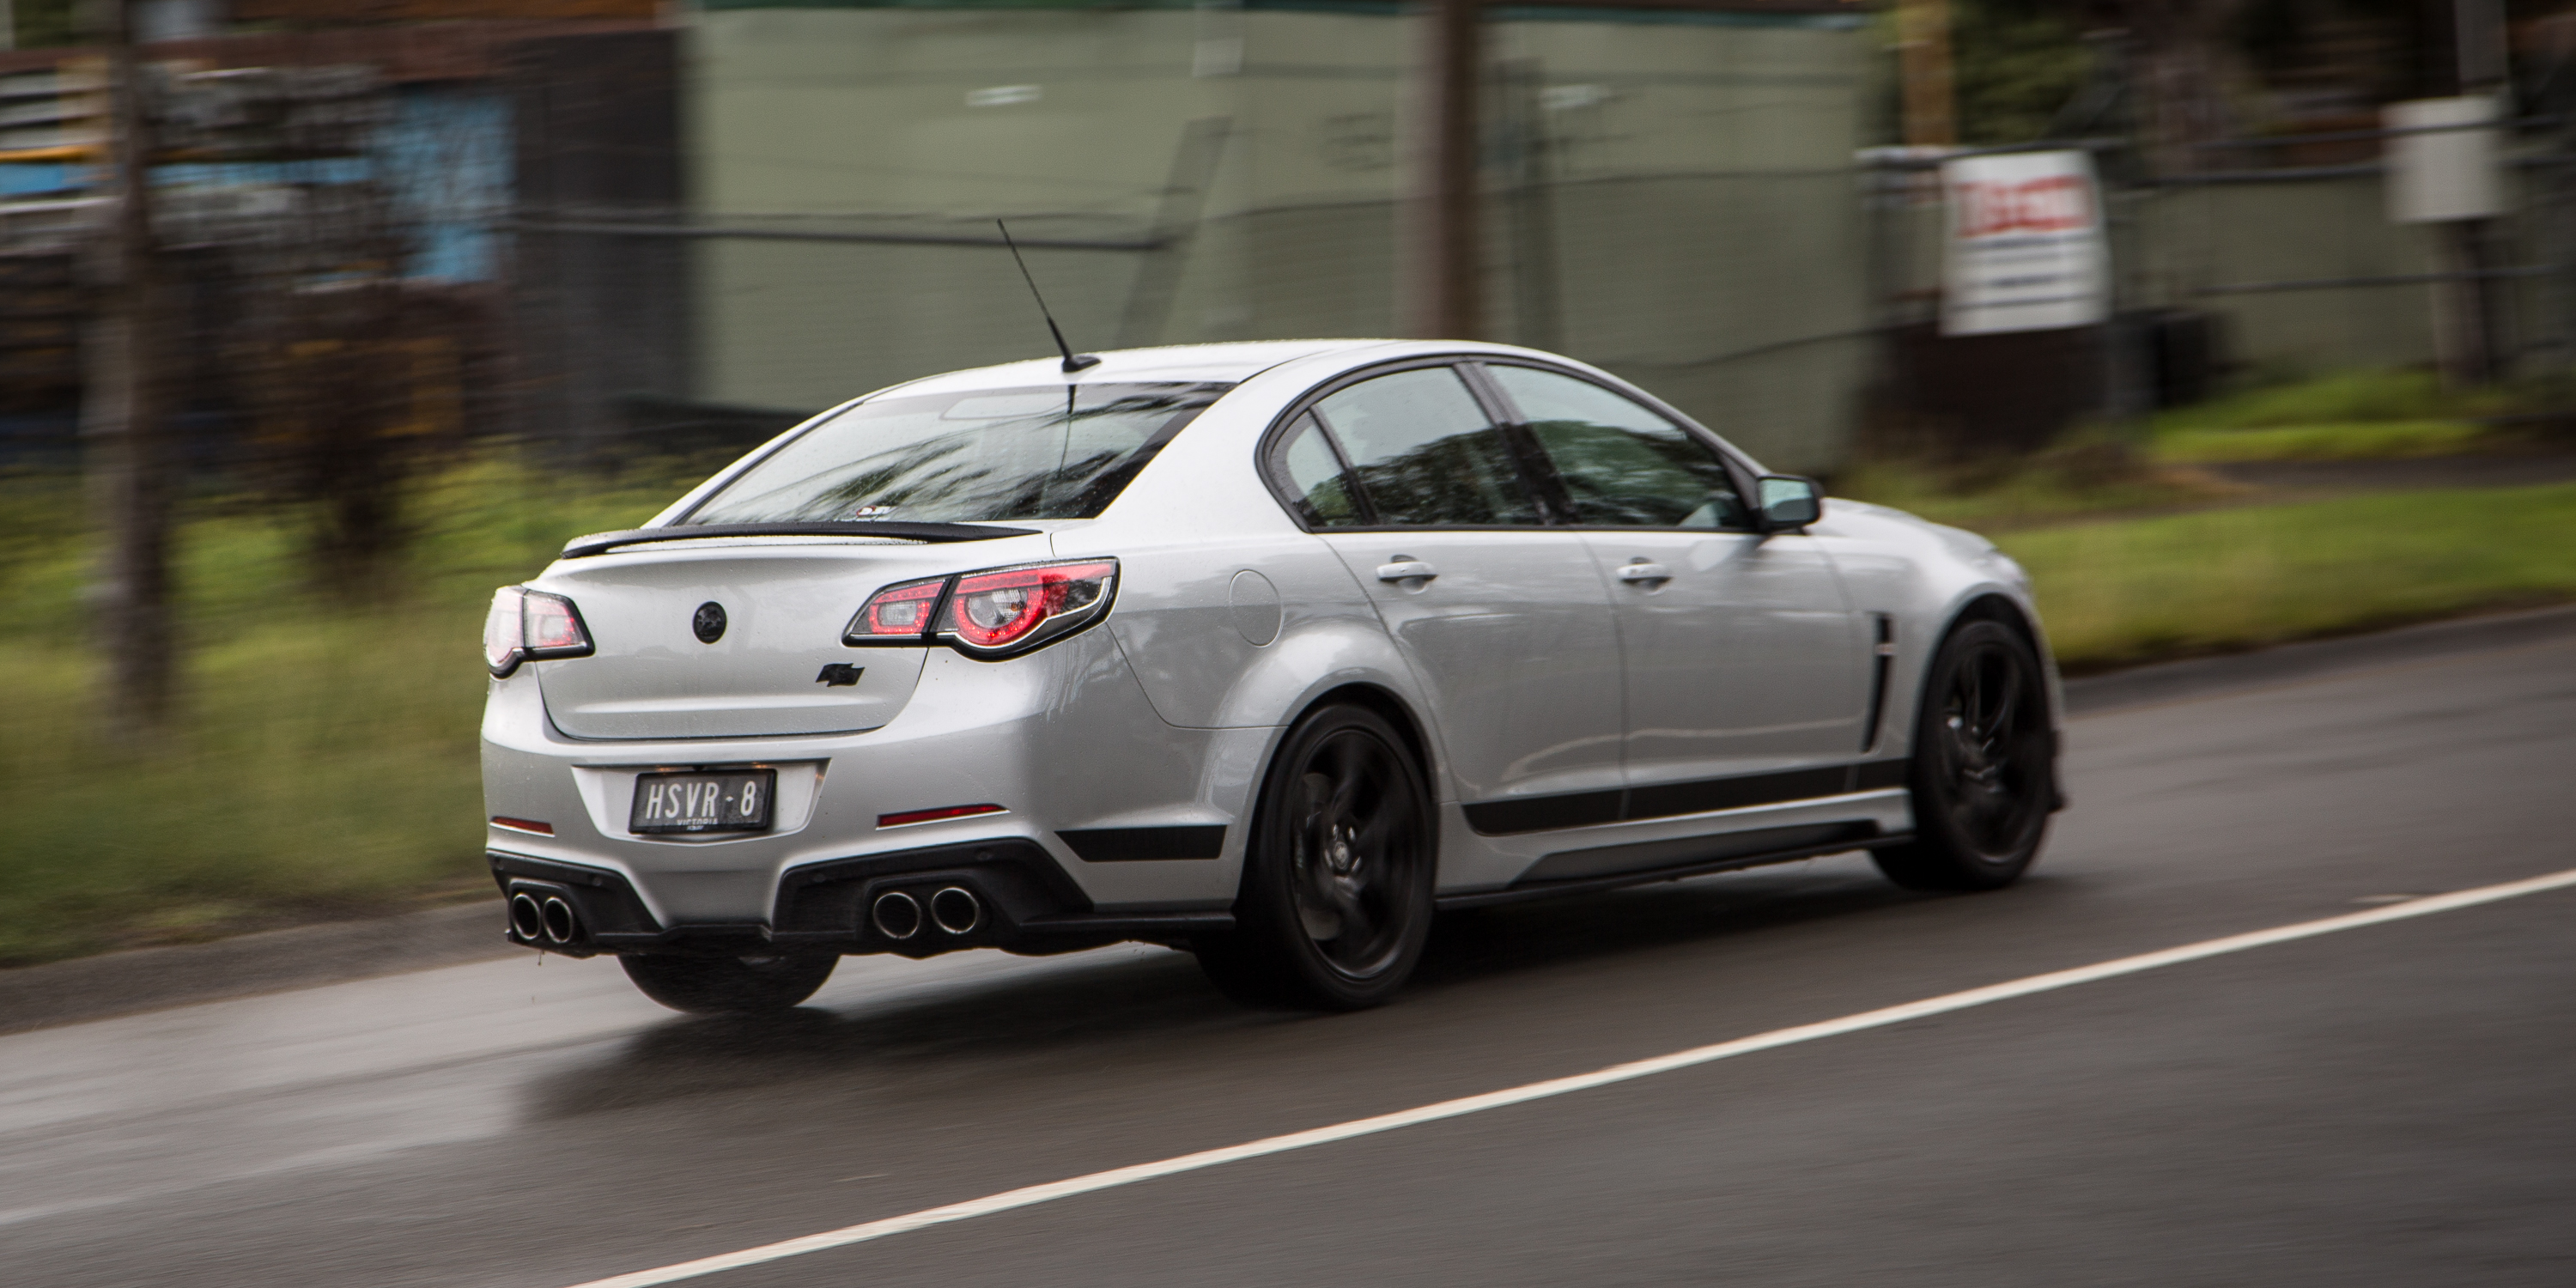 2016 hsv clubsport r8 sv black review caradvice